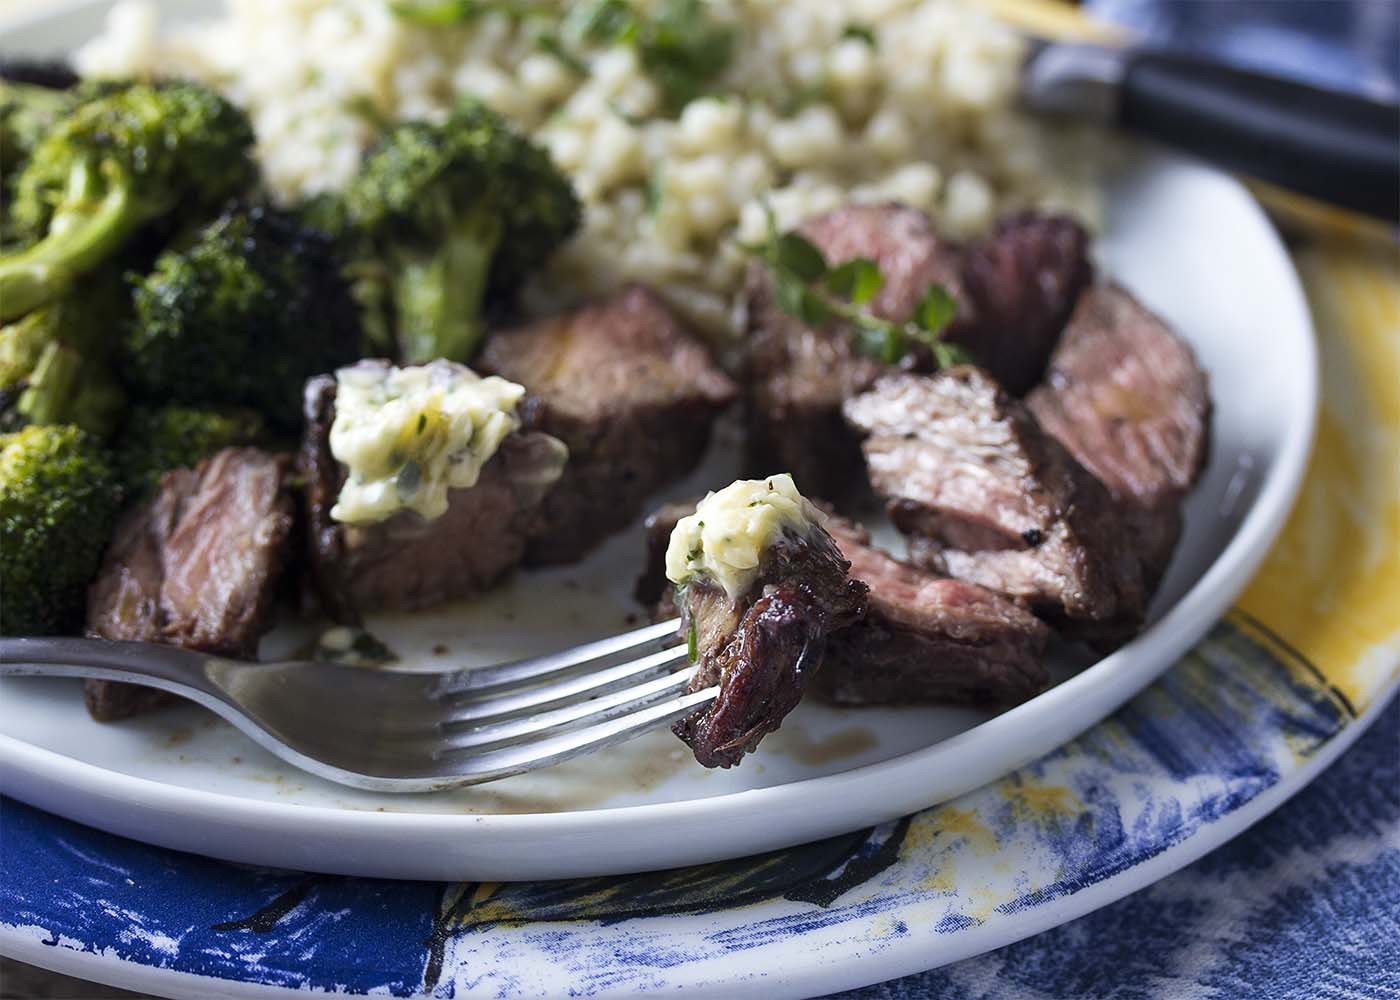 Close up of a slice of grilled sirloin tip on fork topped with the shallot butter and the rest of the plate of steak, broccoli, and couscous in the background.